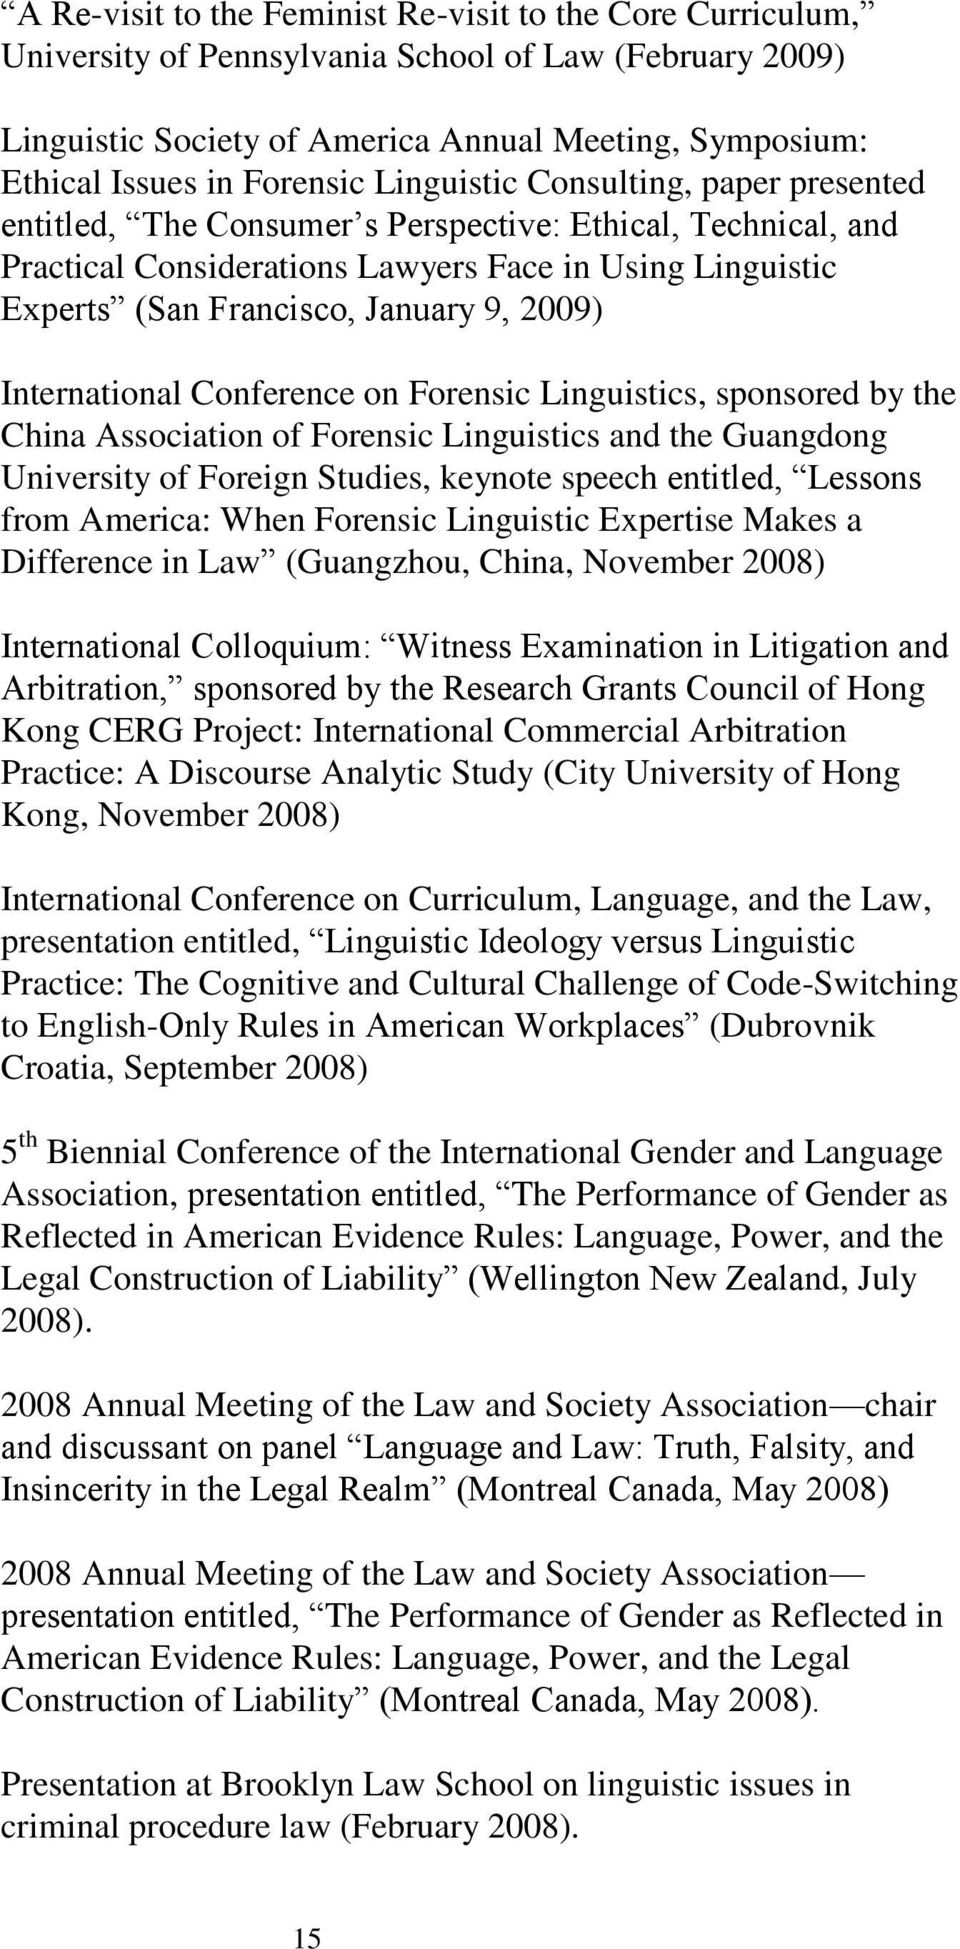 9, 2009) International Conference on Forensic Linguistics, sponsored by the China Association of Forensic Linguistics and the Guangdong University of Foreign Studies, keynote speech entitled, Lessons